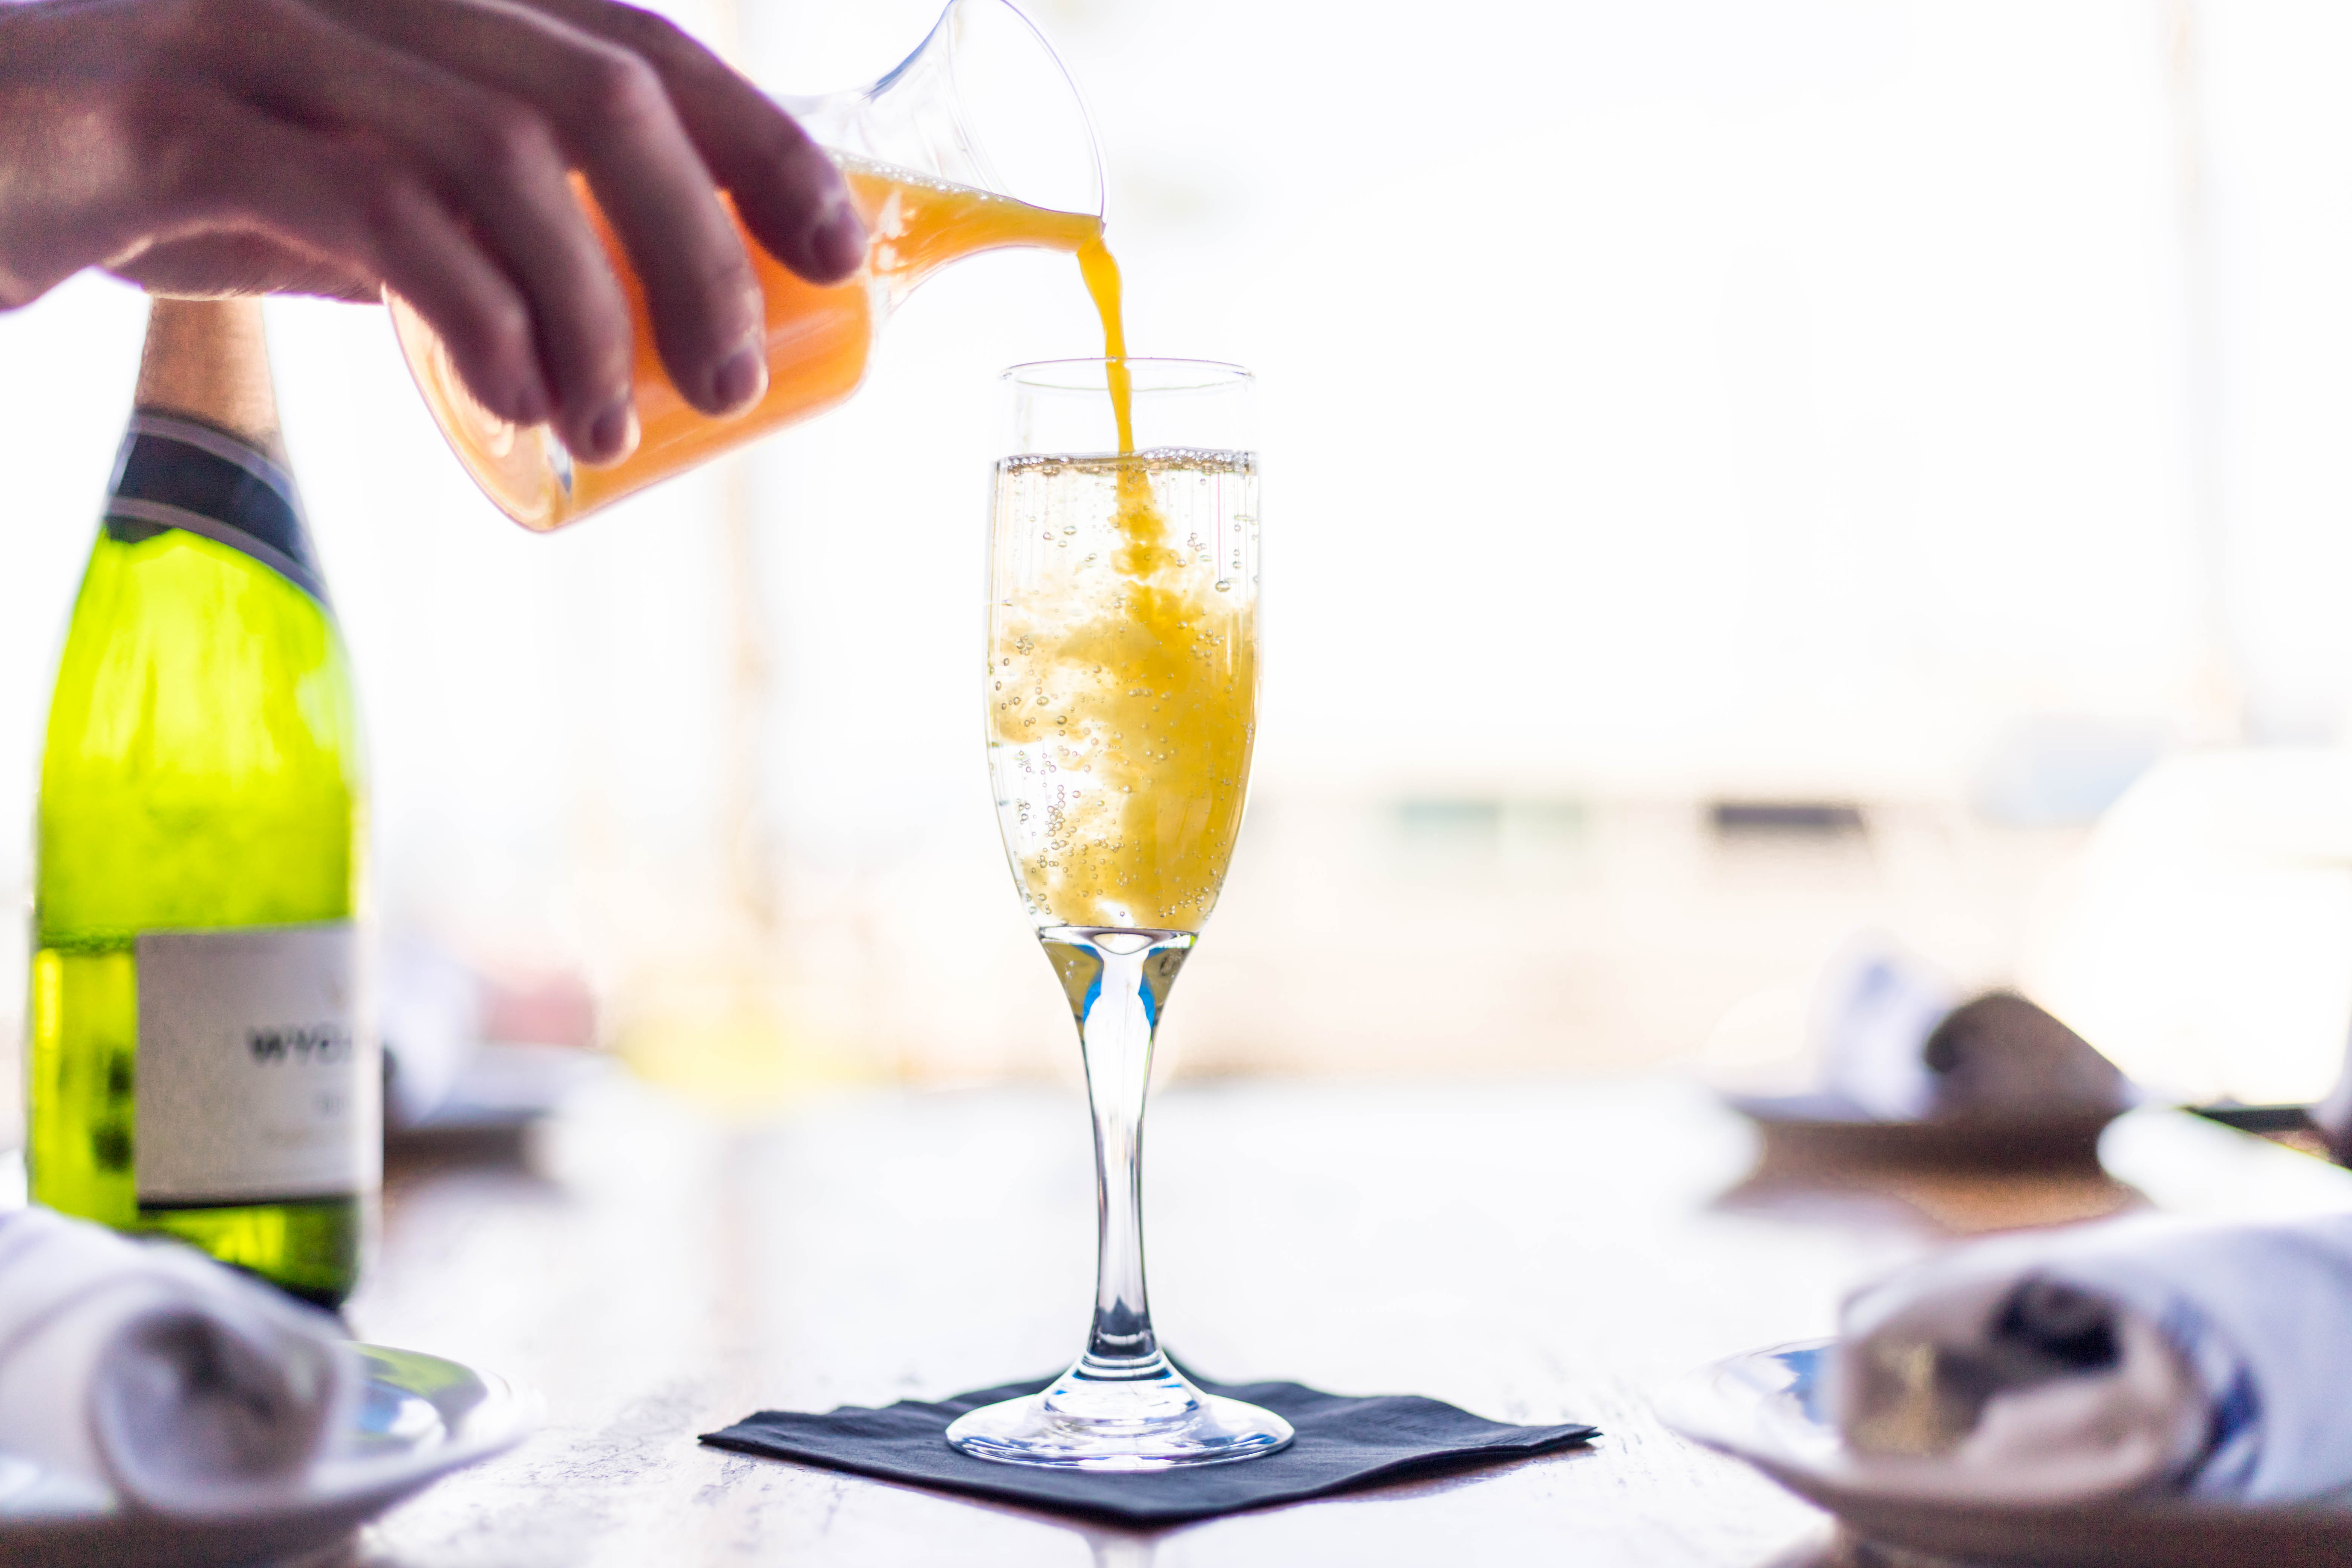 orange juice being poured in champagne glass